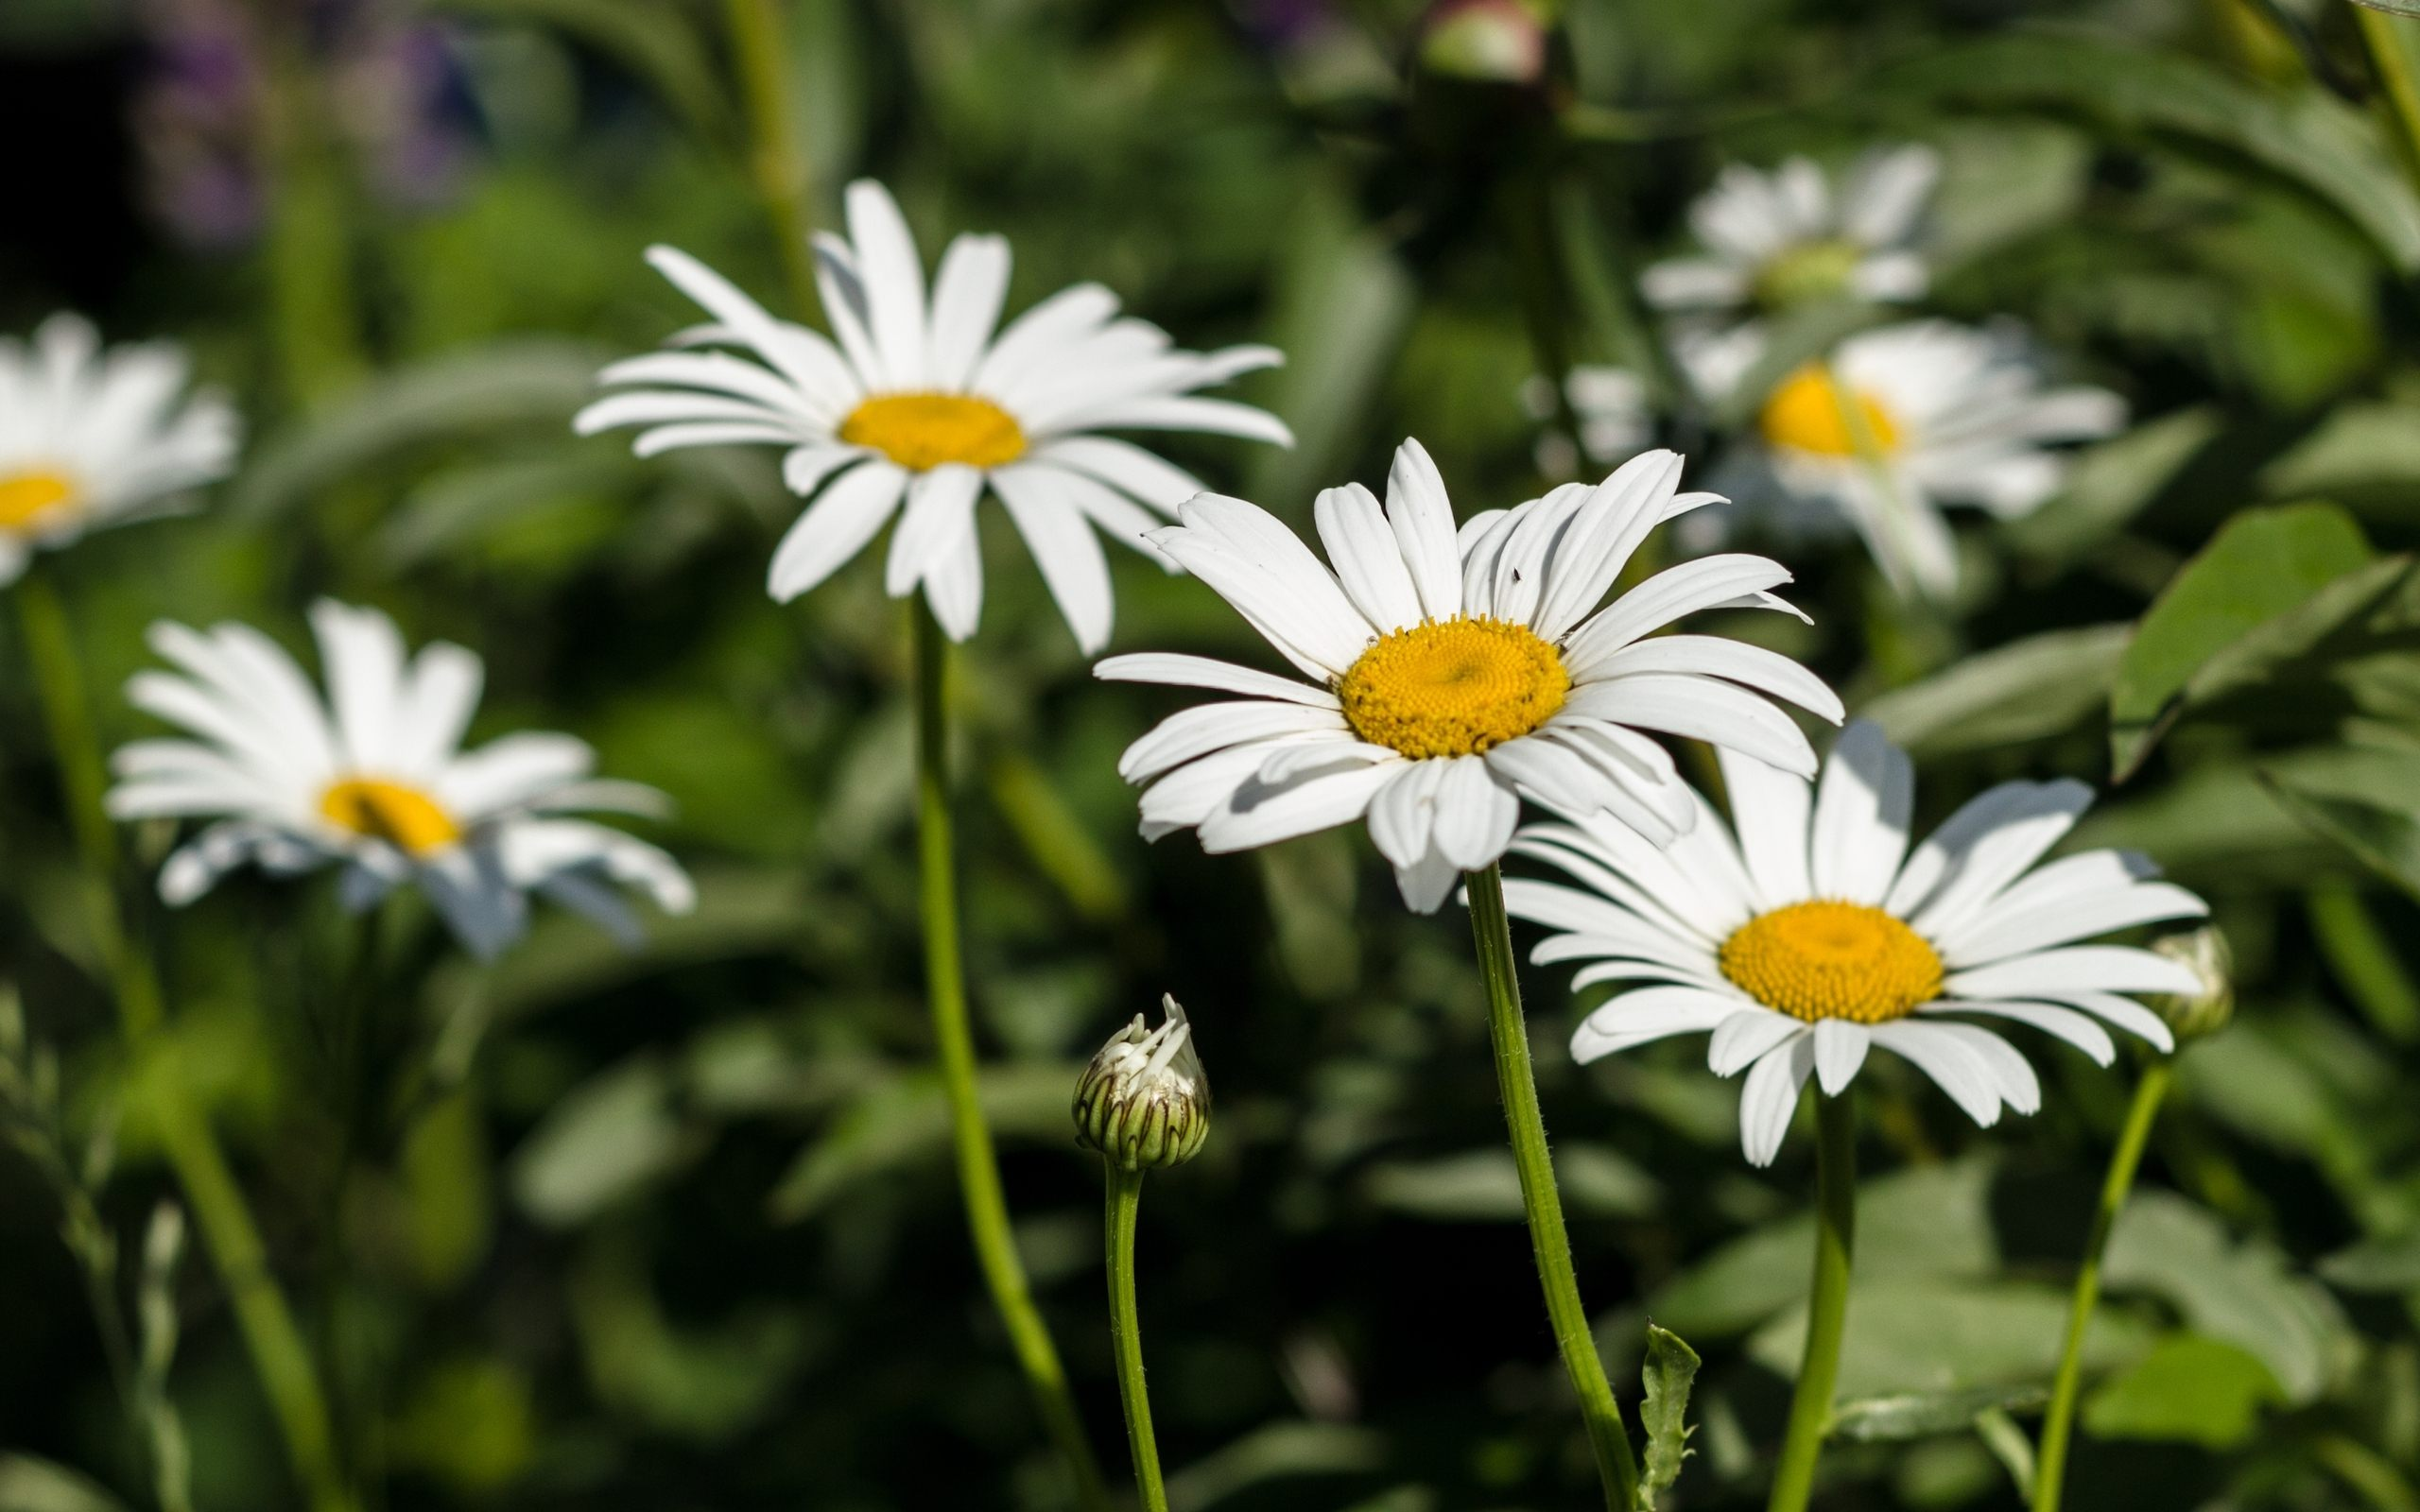 White daisy flower photo